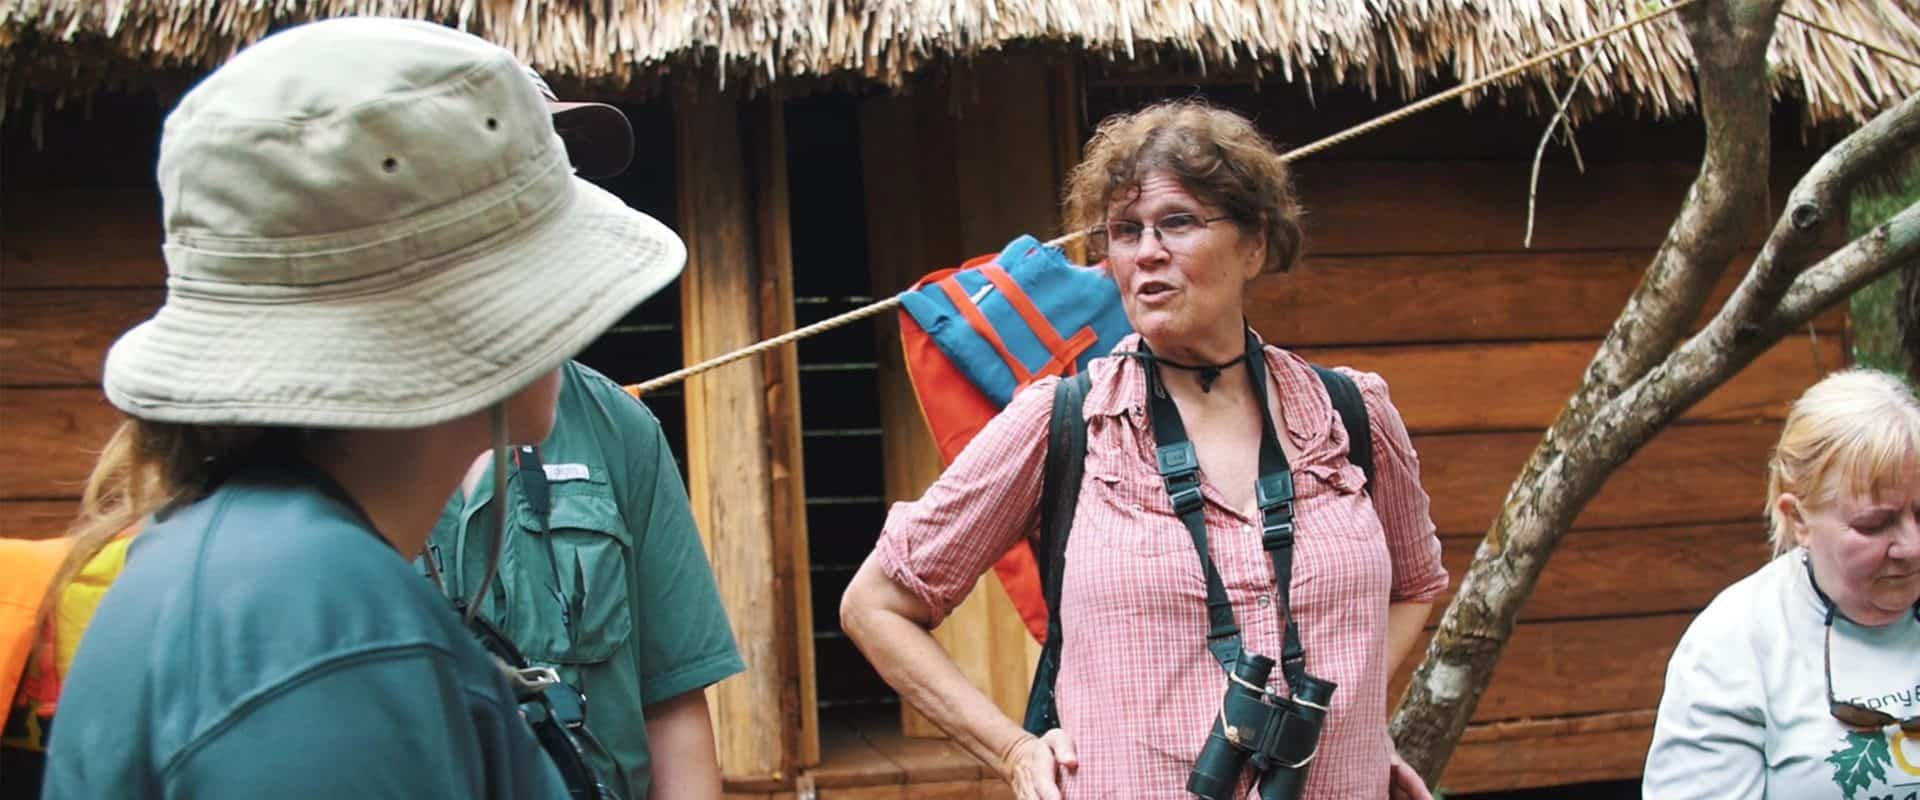 WPU Professor, Dr. Vick leads students on a Study abroad trip in Mexico.